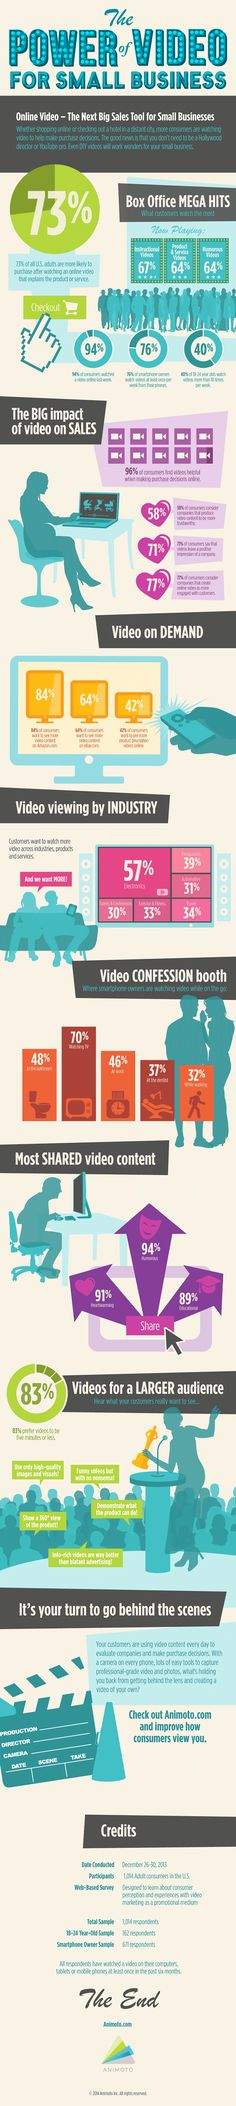 Small #Business #Video #infographic